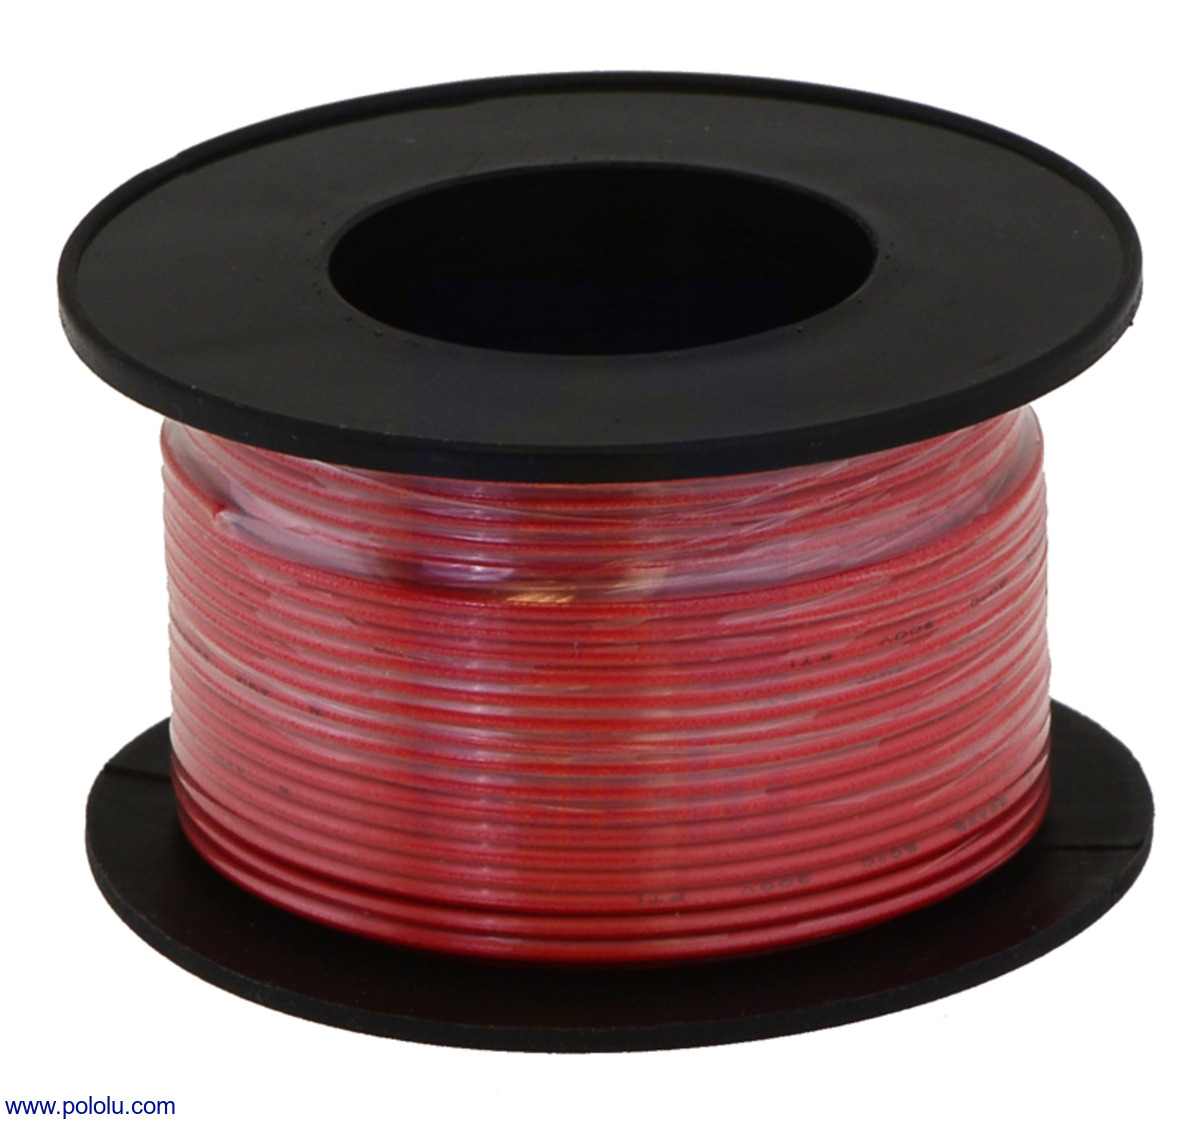 Pololu stranded wire red 28 awg 90 feet stranded wire red 28 awg 90 feet greentooth Image collections